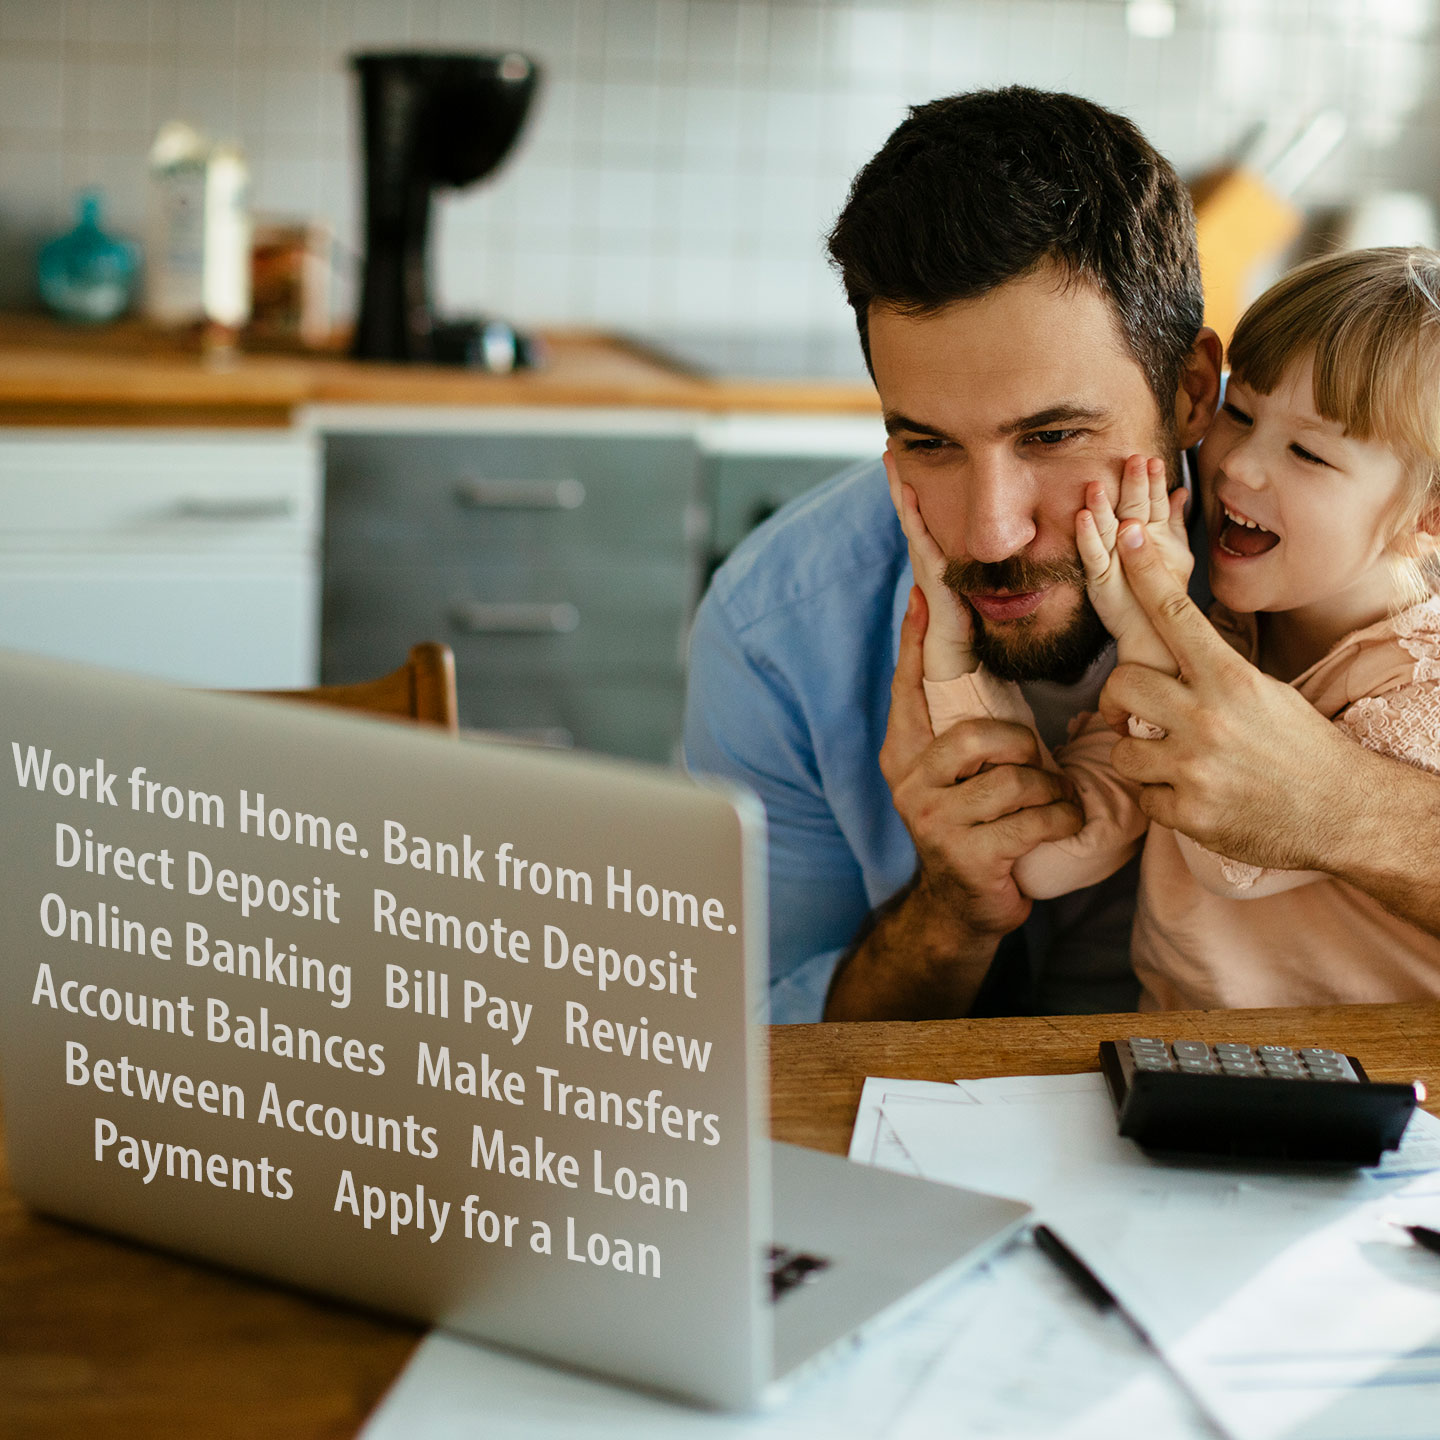 Man doing home banking on his laptop while daughter plays with his face.